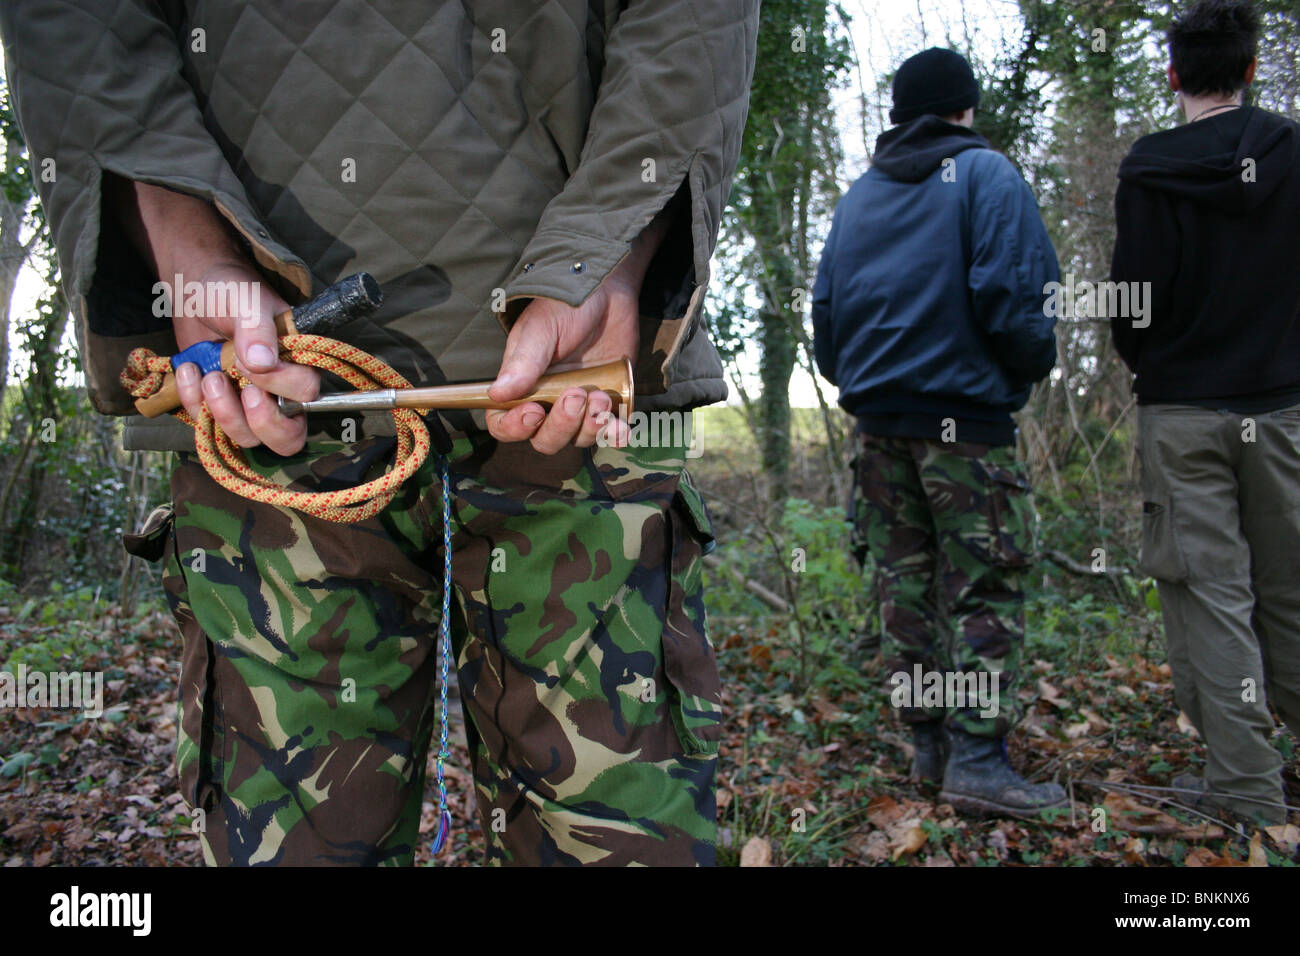 Hunt Saboteur holding hunting horn and home-made whip, Herefordshire, UK - Stock Image